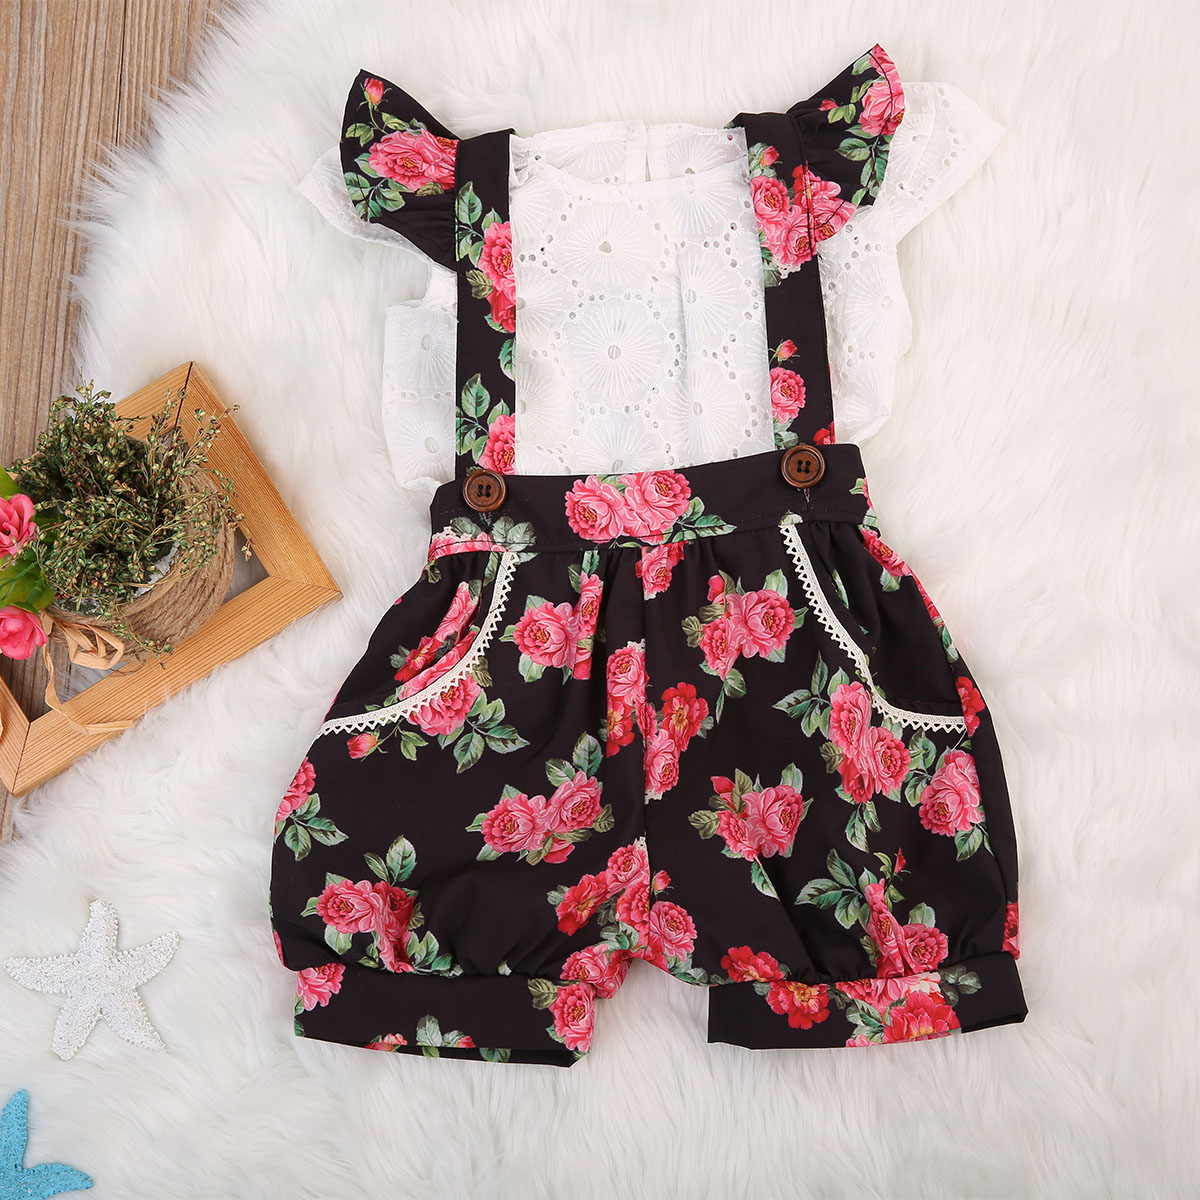 Adorable 2pcs Kids Baby Girls Floral Summer Outfits Girl T-Shirt Tops+ Floral Bib Pants Toddler Clothing Set 1-5T girls clothes outfits 2018 summer boutique kids clothing set arrow t shirt tops pants 2pcs printed toddler girl clothing sets